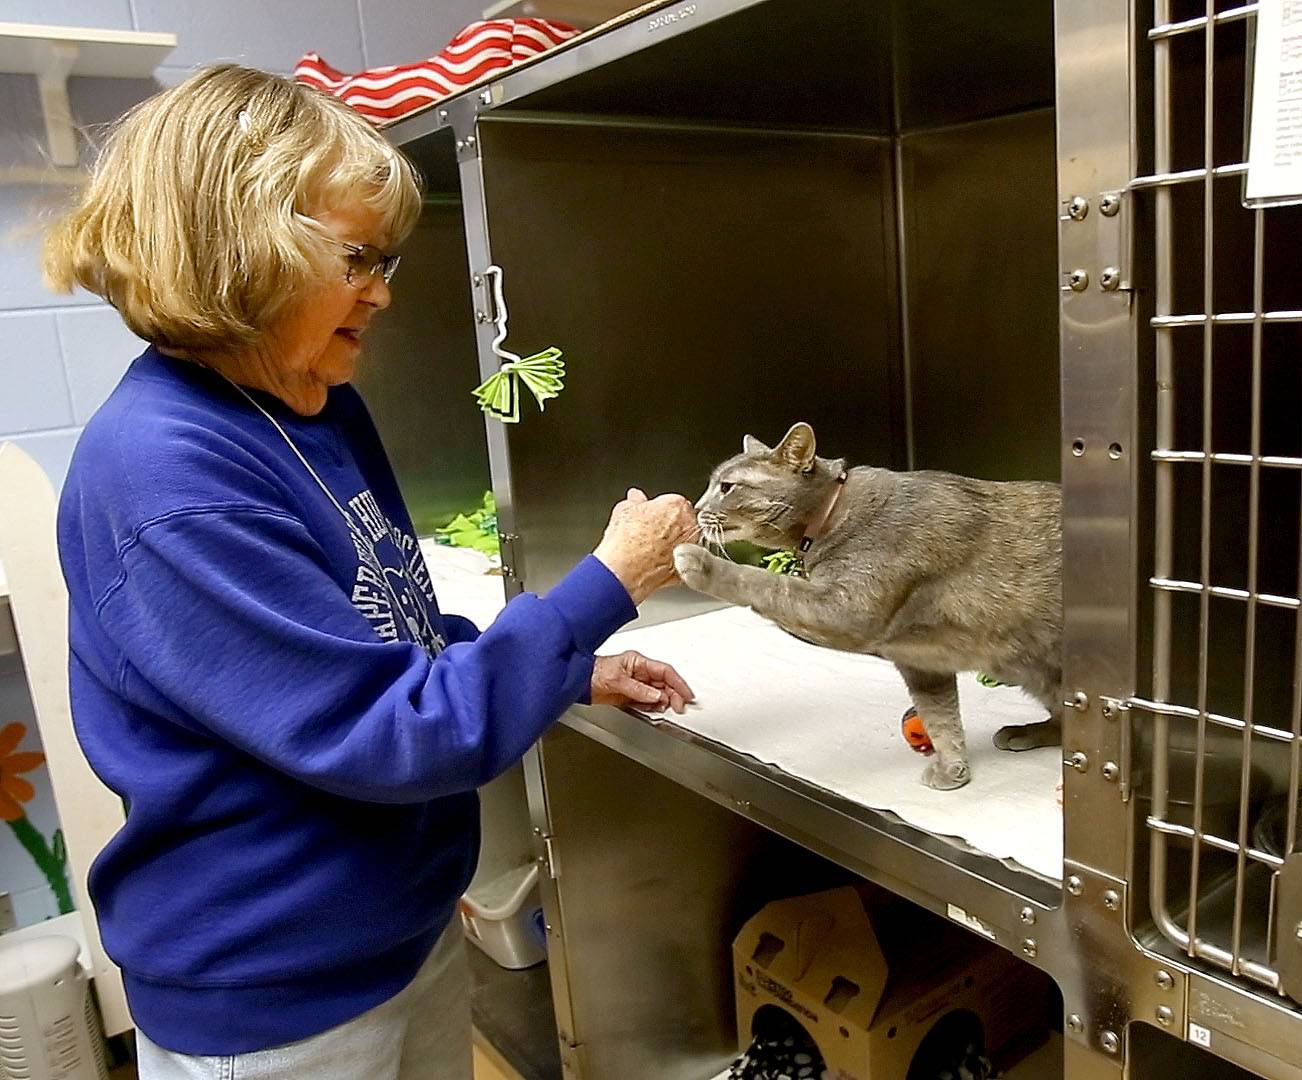 Cleo Keller, volunteer at the Naperville Area Humane Society, visits with one of the cats in the organization's shelter on Diehl Road. Keller is one of the society's founding members and has been volunteering for its entire 35-year history.